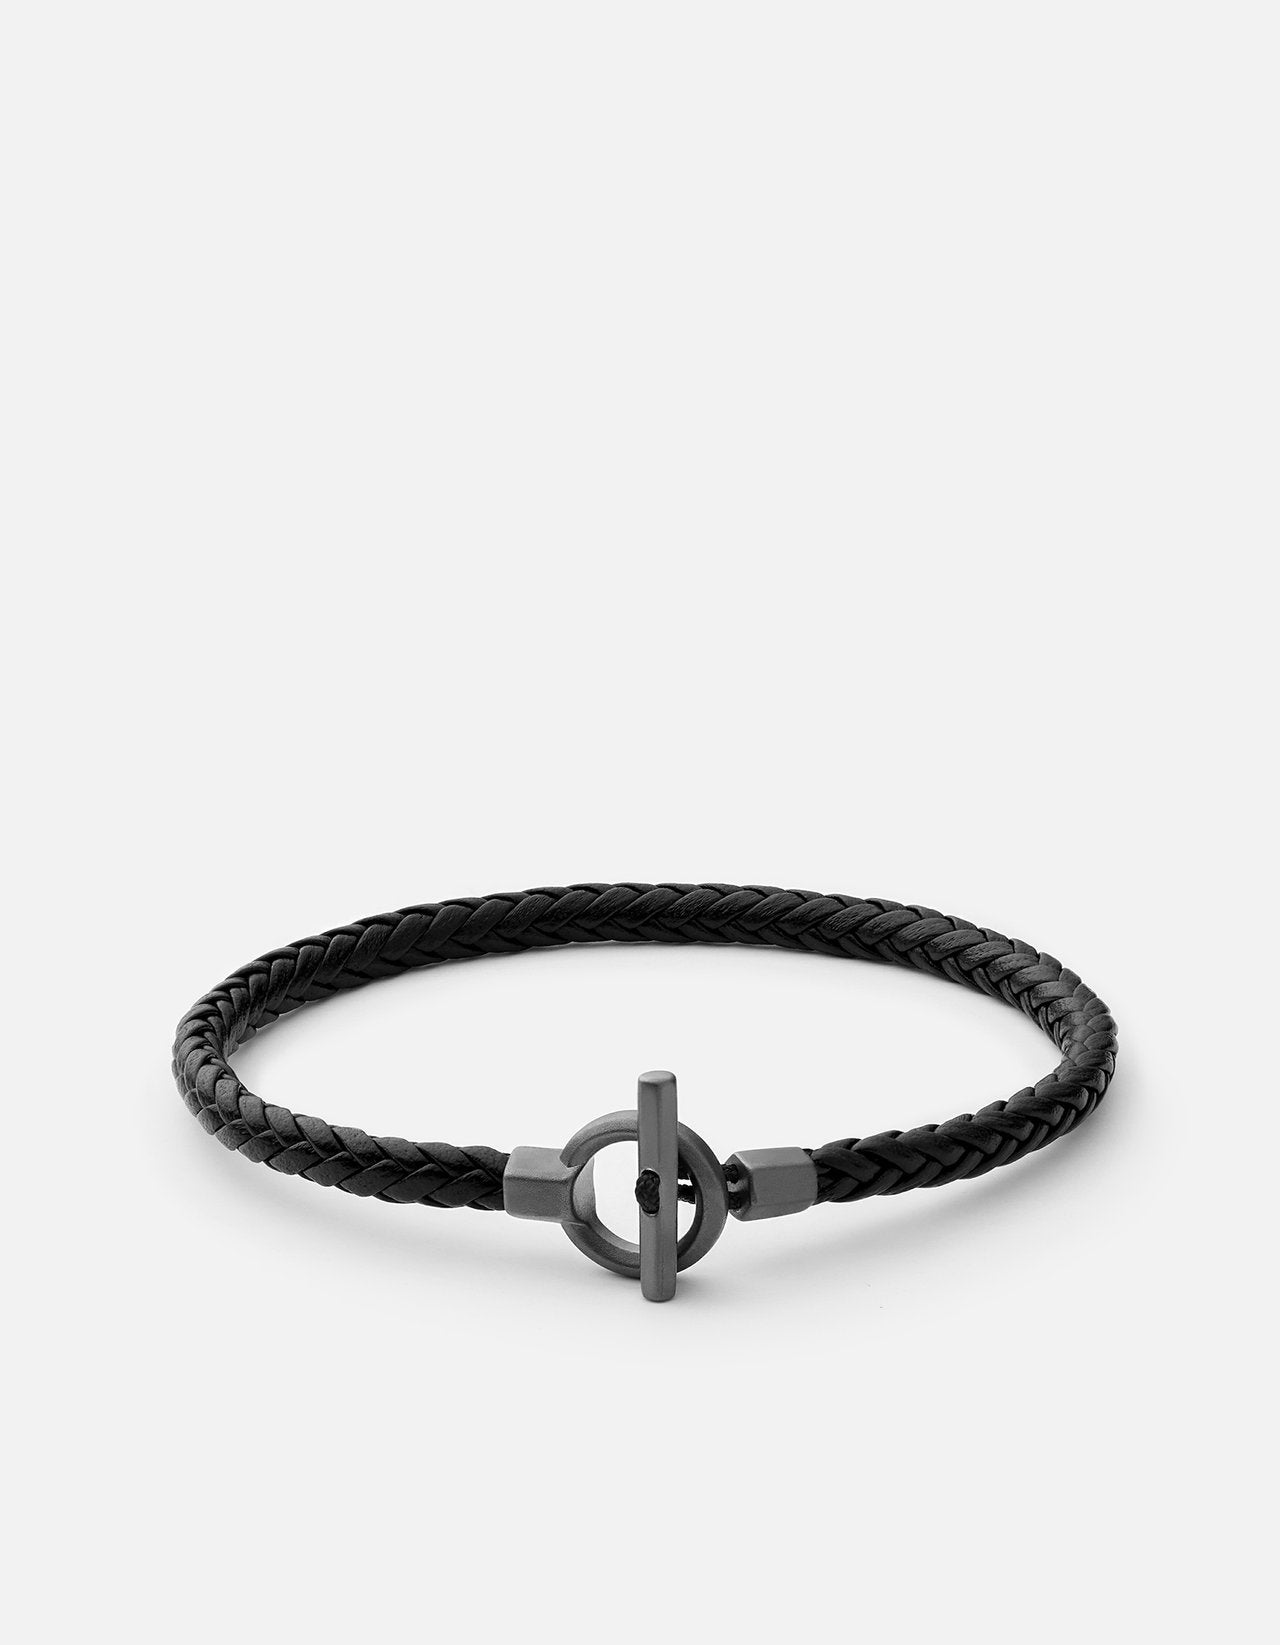 Miansai Atlas Leather Bracelet, Sterling Silver, Matte Black Rhodium